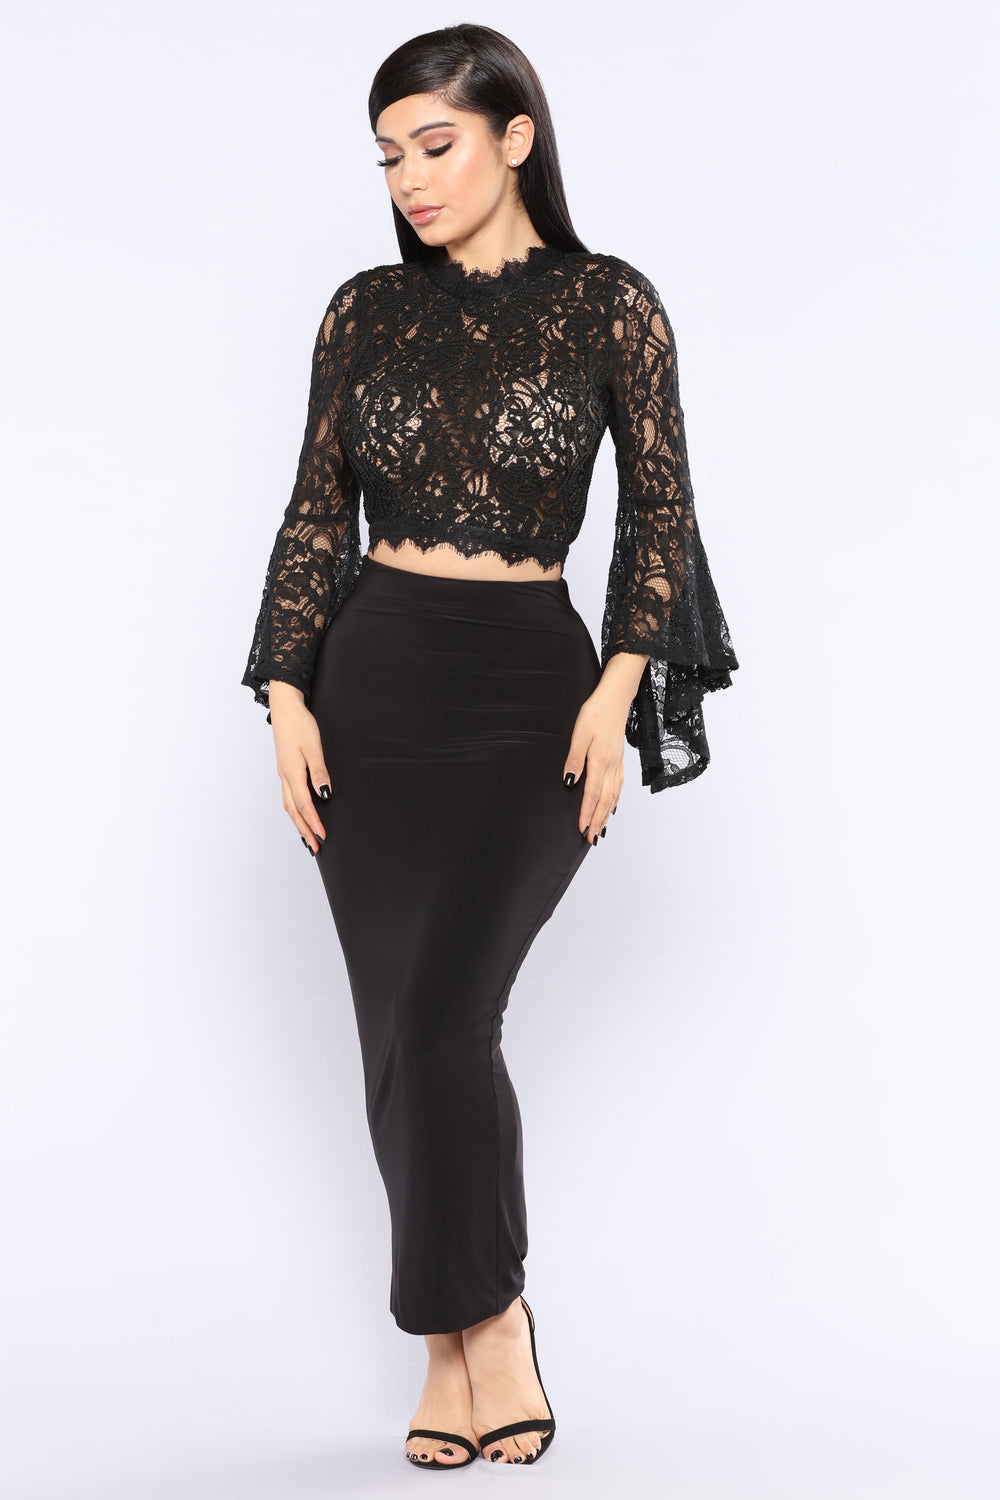 Sheer Romance Lace Top - Black